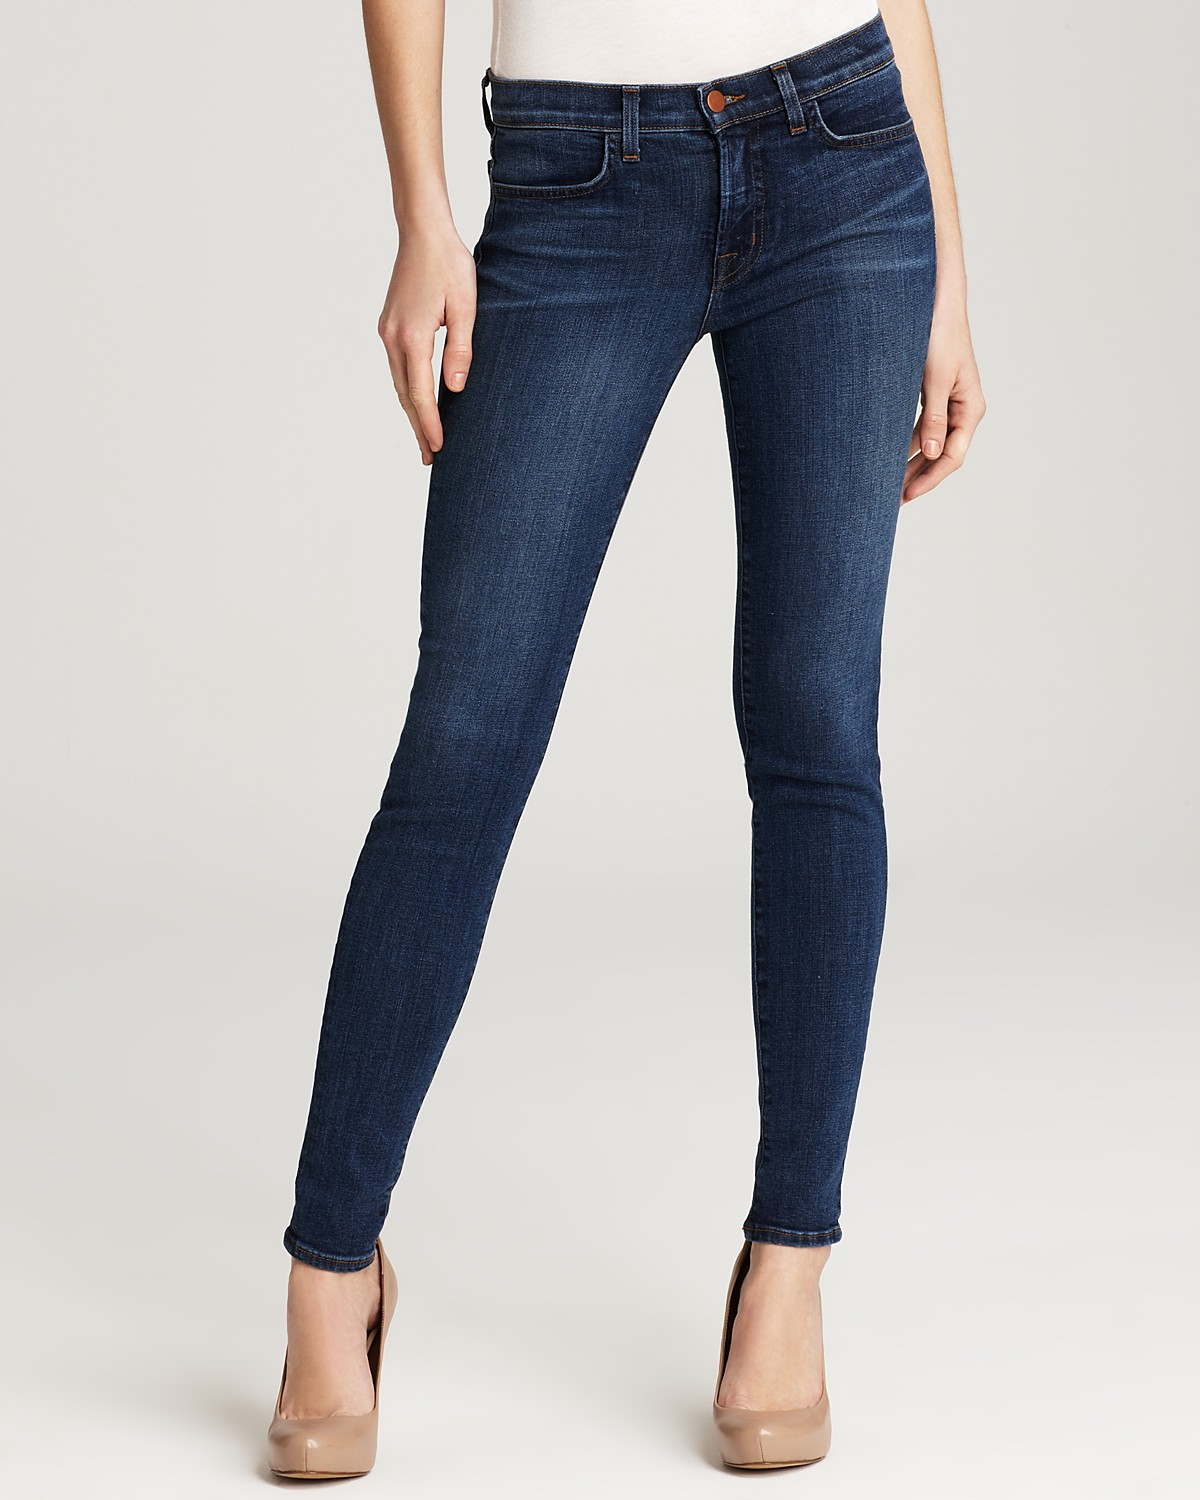 Women's Skinny Jeans provide the style you love that will fit perfectly into your budget. Shop Kohl's for all your jeans needs, and complete your everyday wardrobe! When it comes to jeans, Kohl's knows that brand can make the difference.